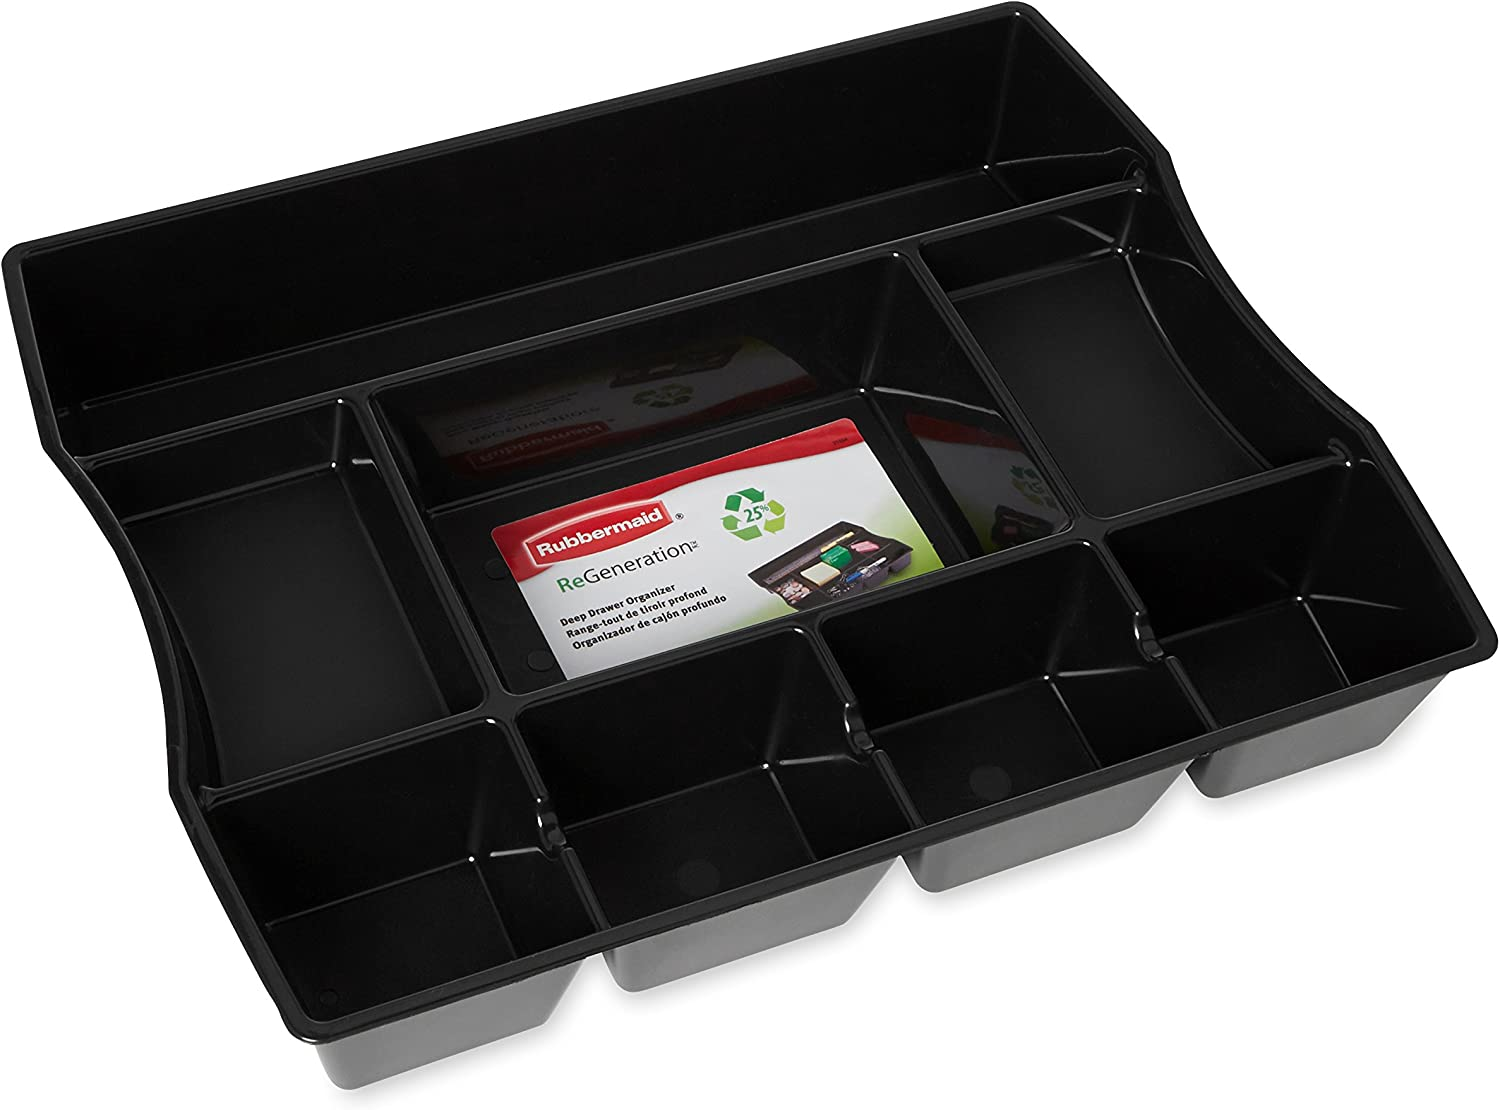 Amazon.com : Rubbermaid 48 Regeneration Recycled Deep-Drawer